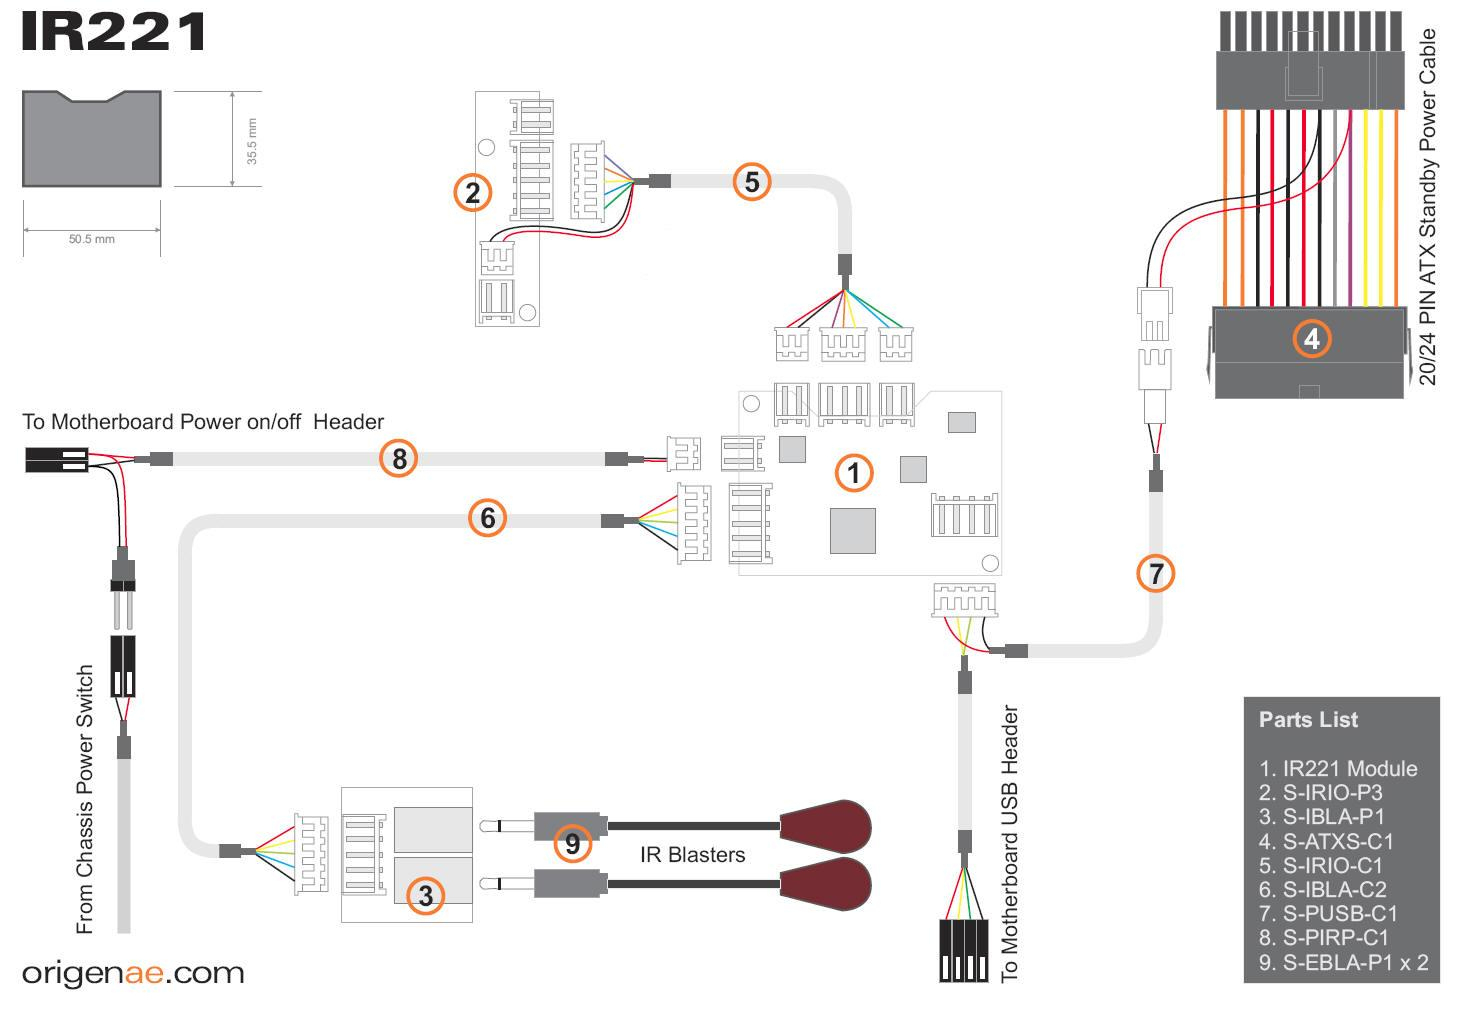 Usb To Db9 Cable Wiring Diagram   Wiring Diagram - Usb To Micro Usb Wiring Diagram